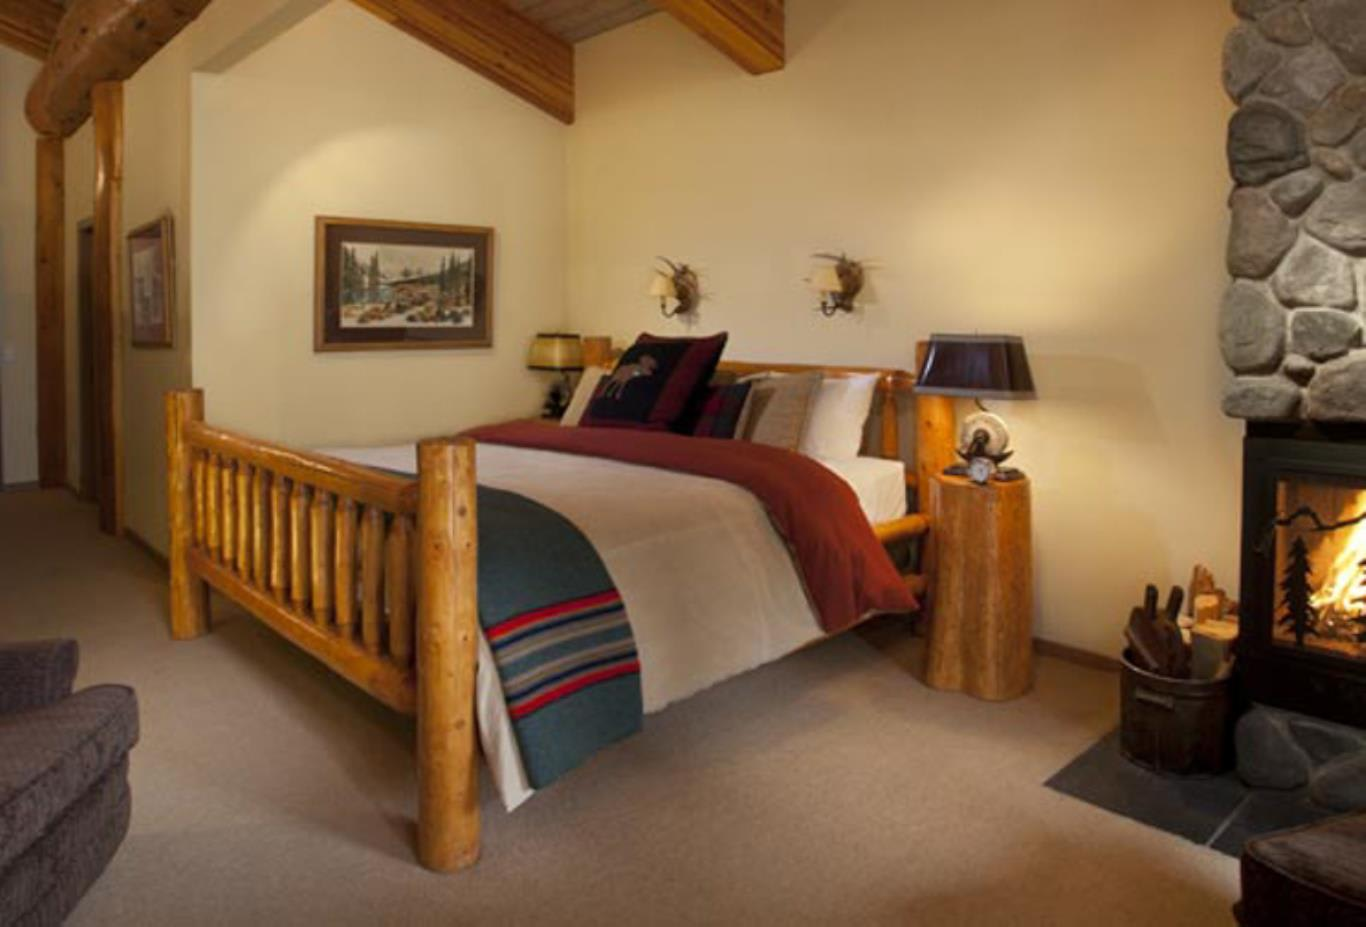 Deluxe King or Twin bedroom